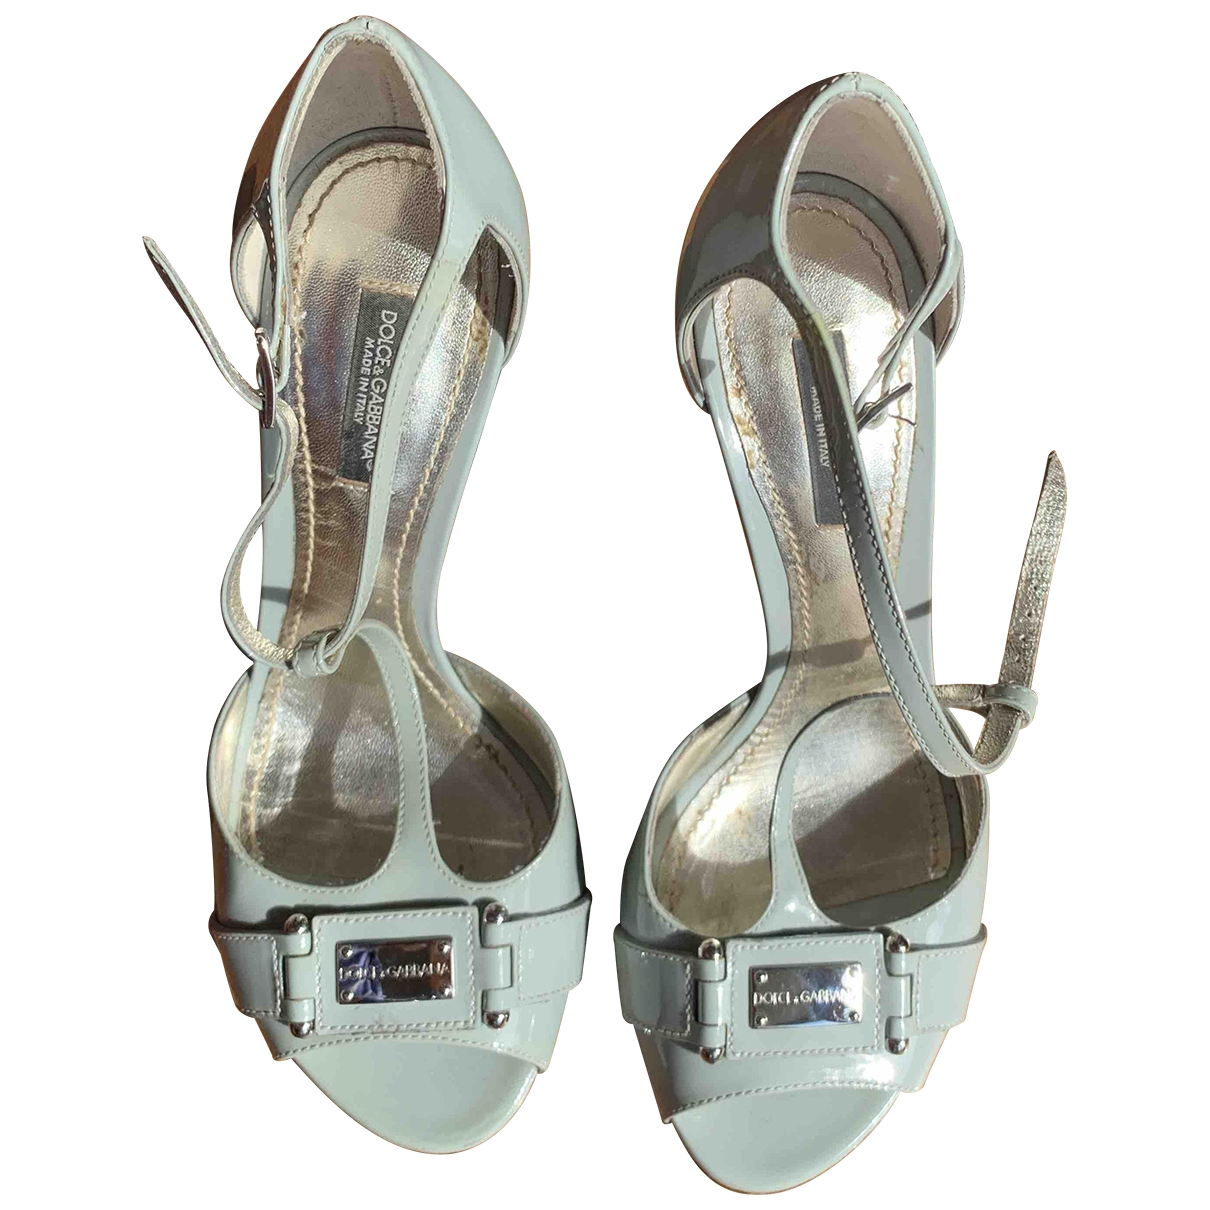 Dolce & Gabbana \N Grey Patent leather Sandals for Women 37 EU